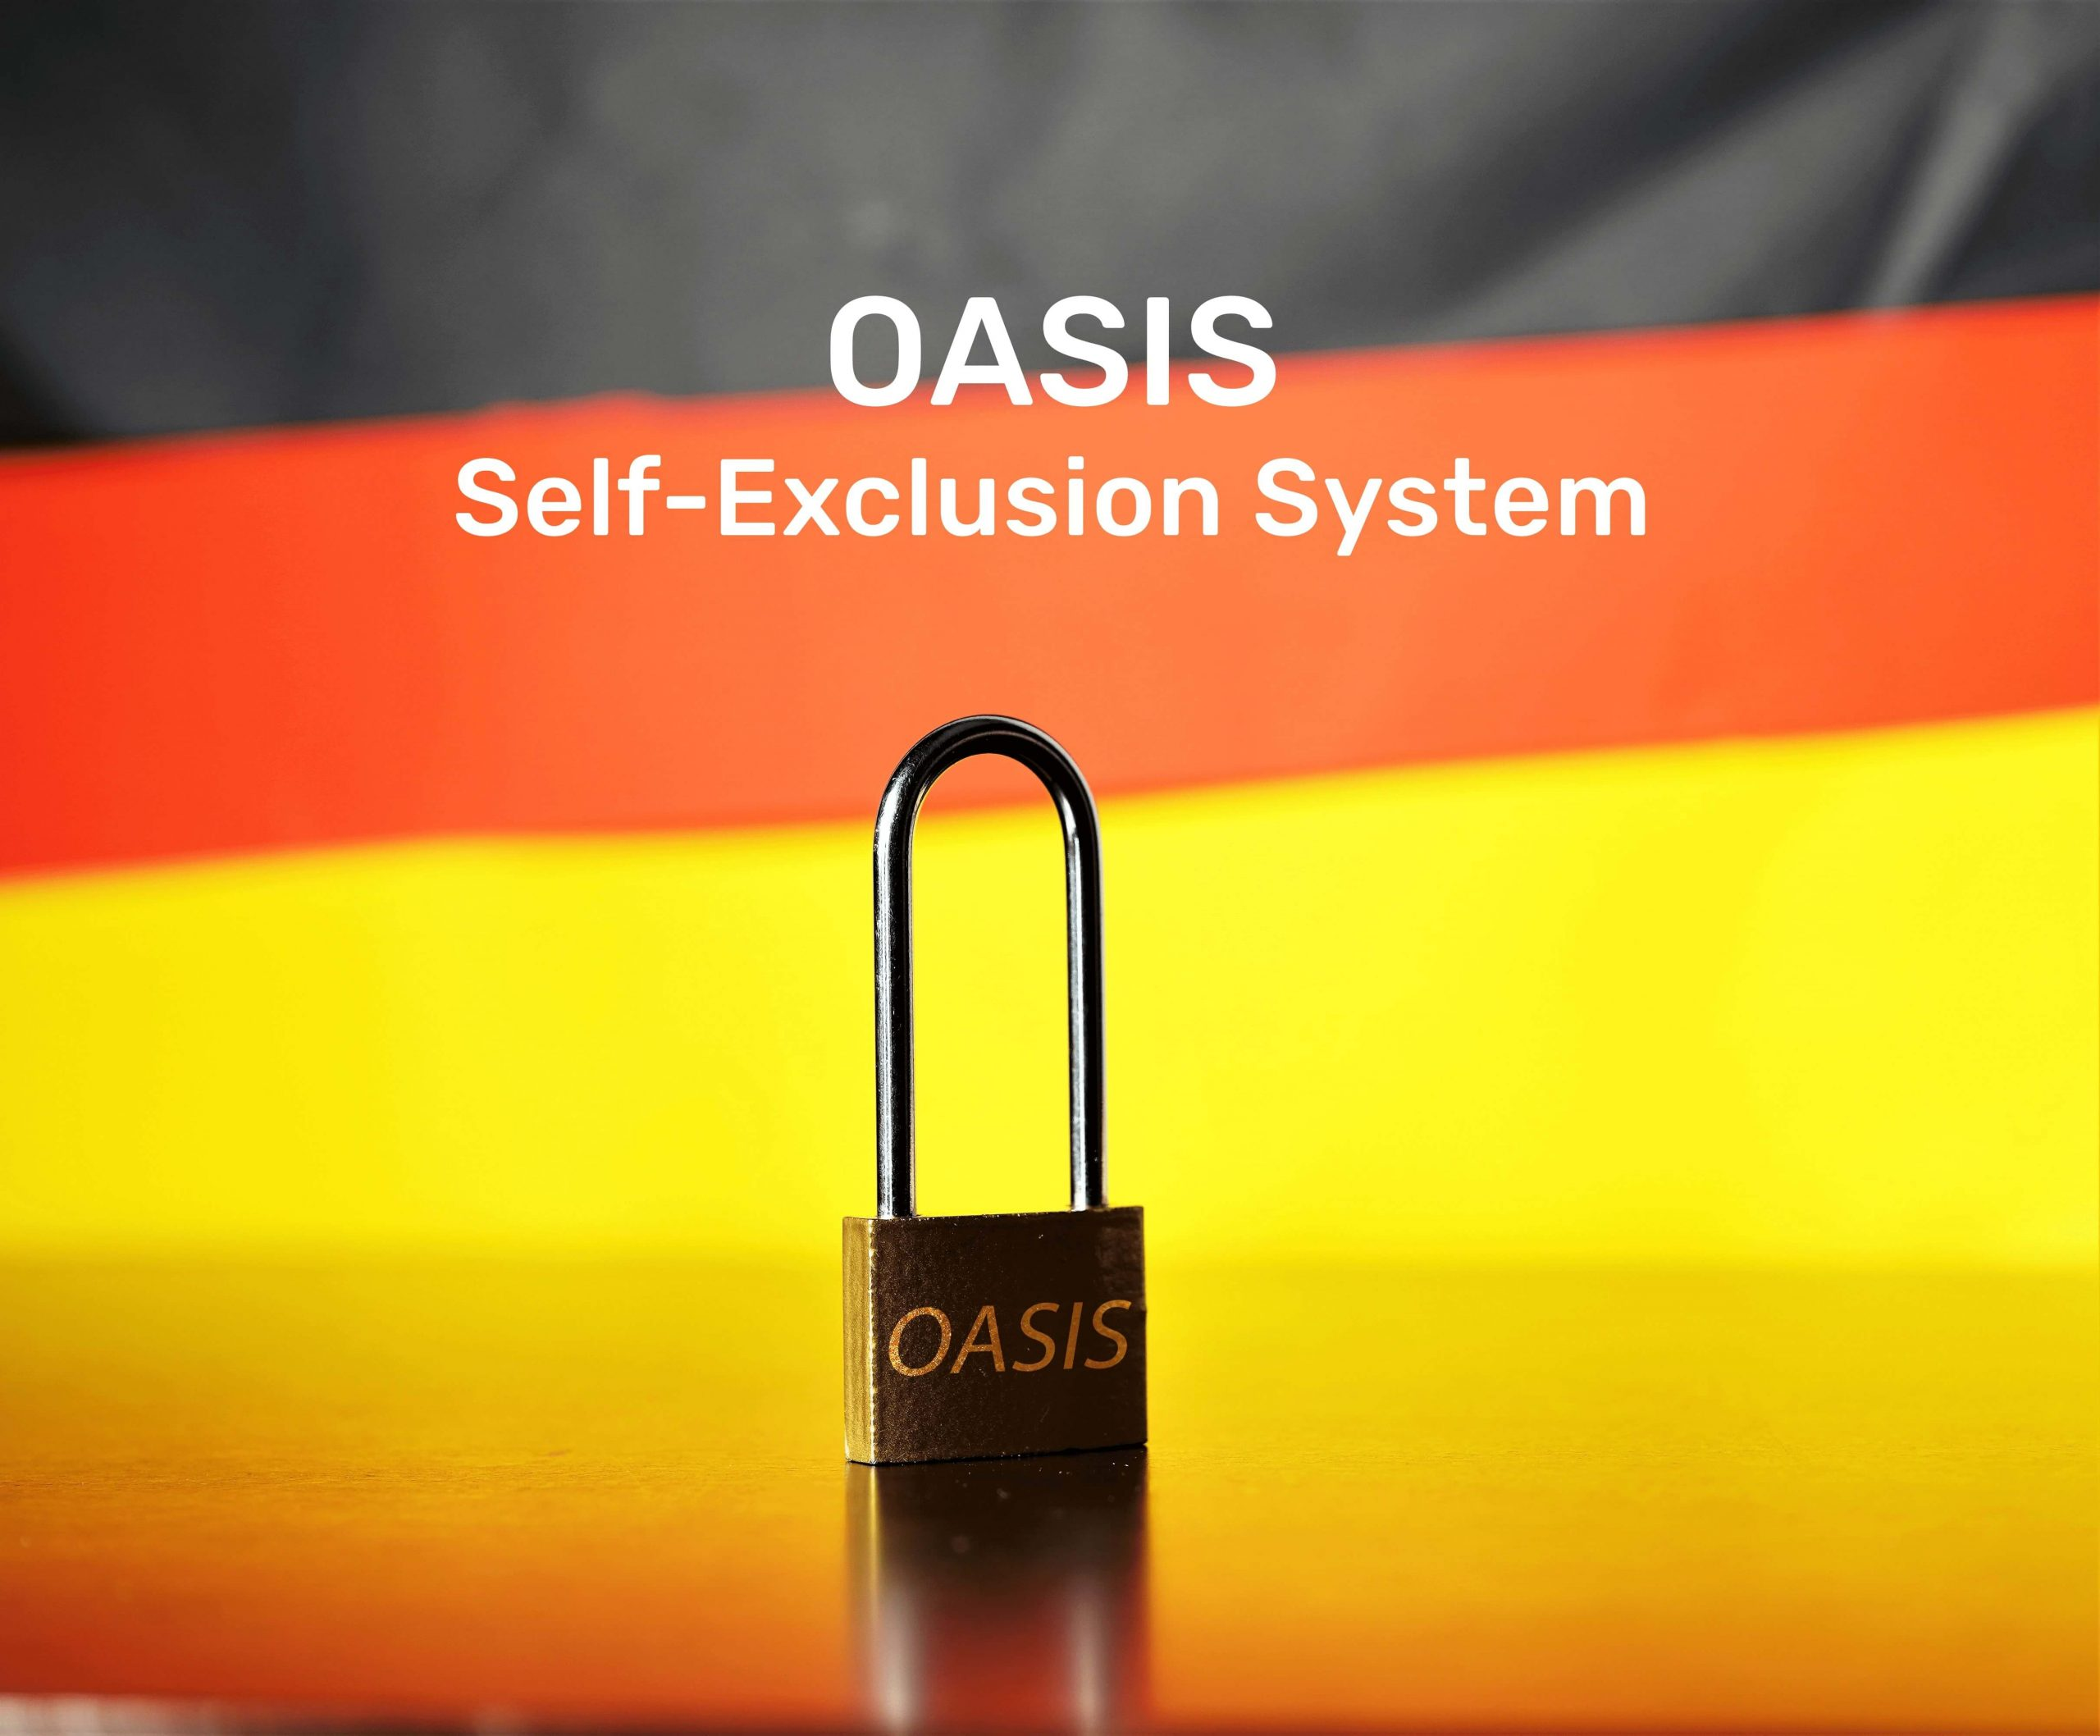 Oasis Self-Exclusion System